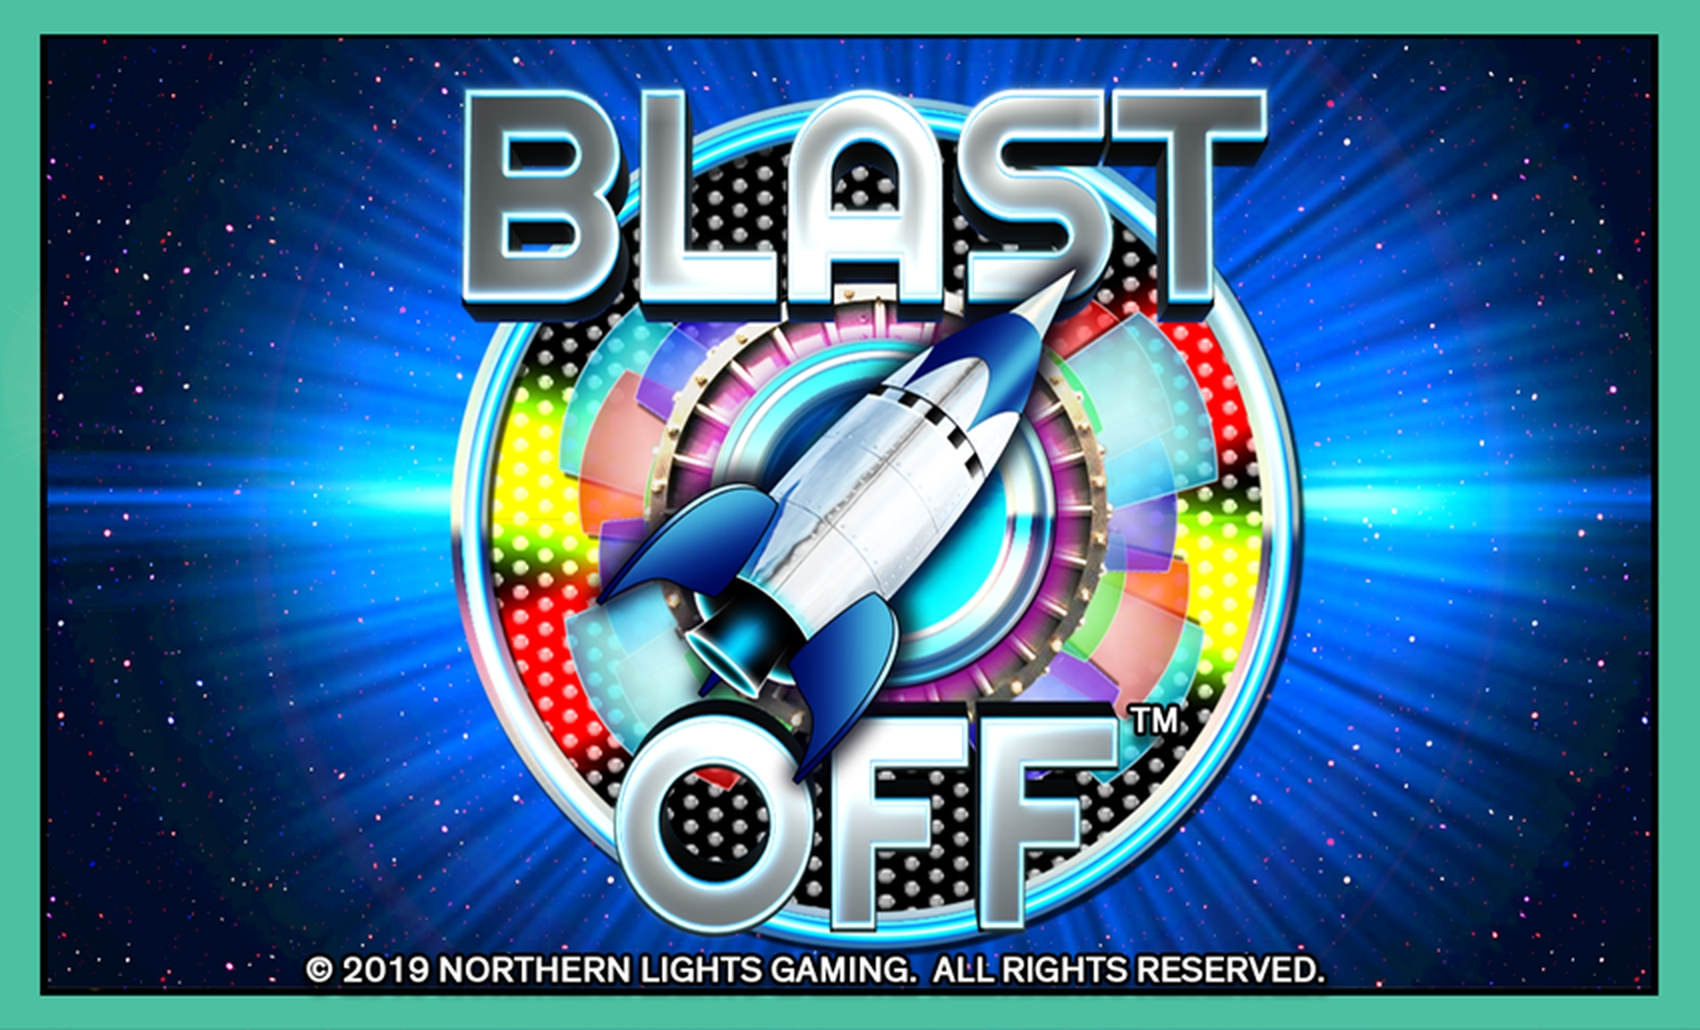 The Blast Off Online Slot Demo Game by Northern Lights Gaming